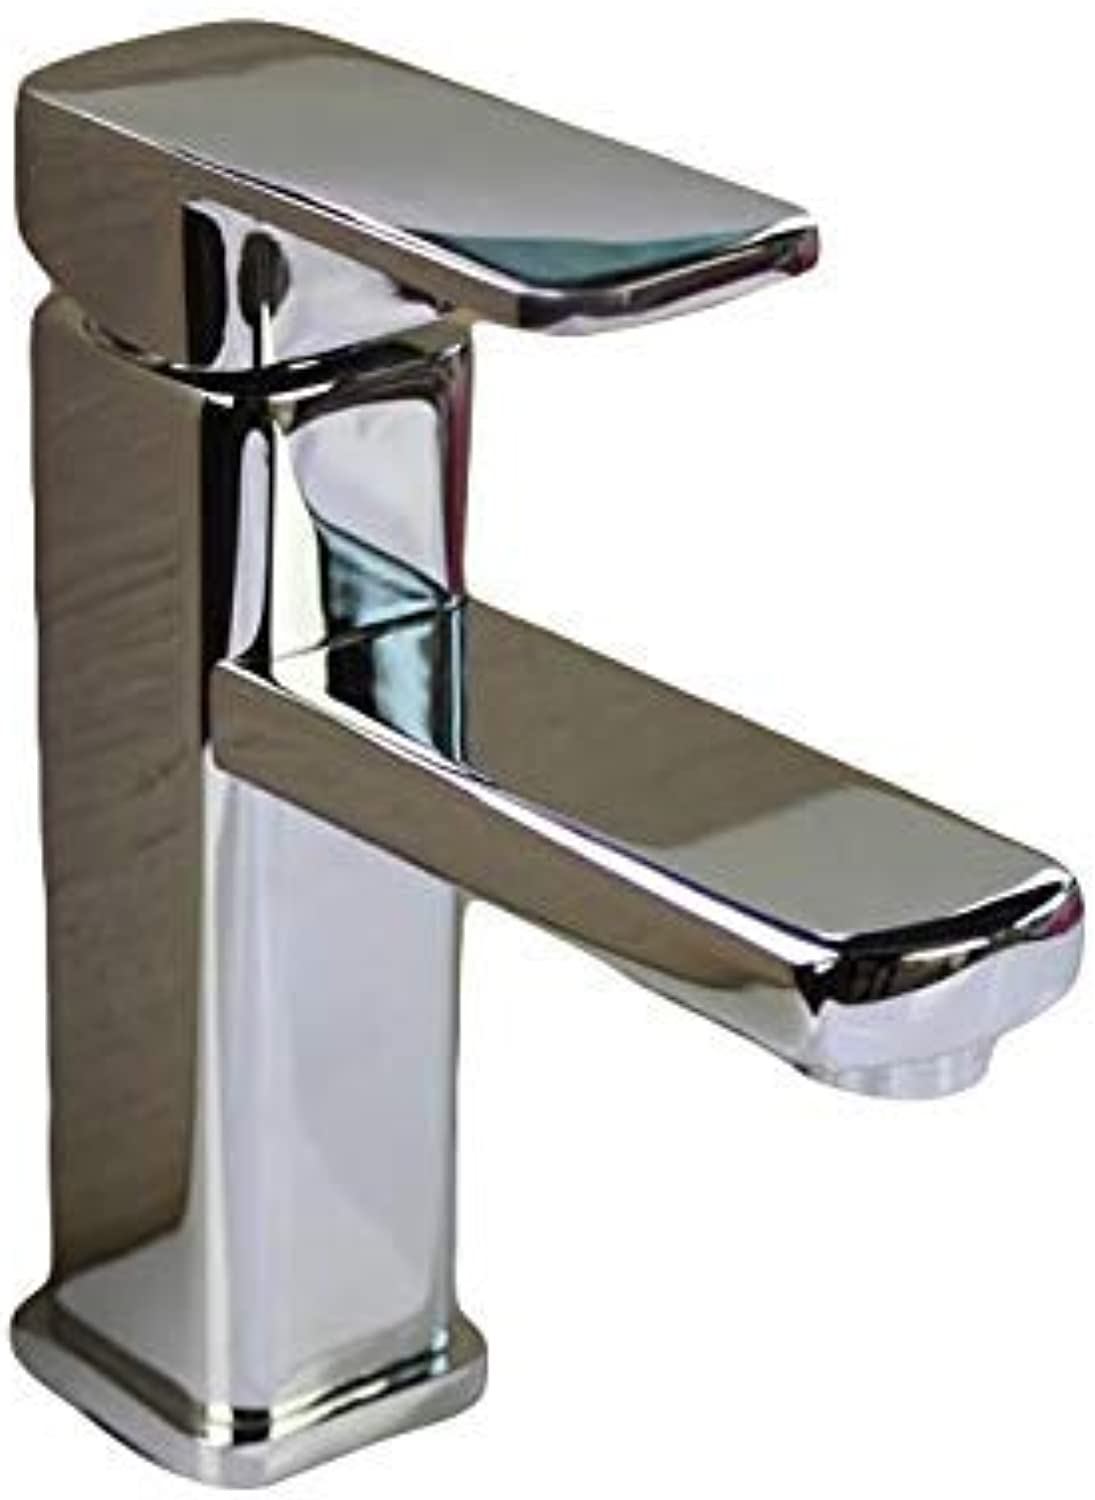 Oudan Simple Chrome Basin Faucet Hot and Cold Water Faucet Suite Bathroom Washbasin Counter Basin (color   -, Size   -)